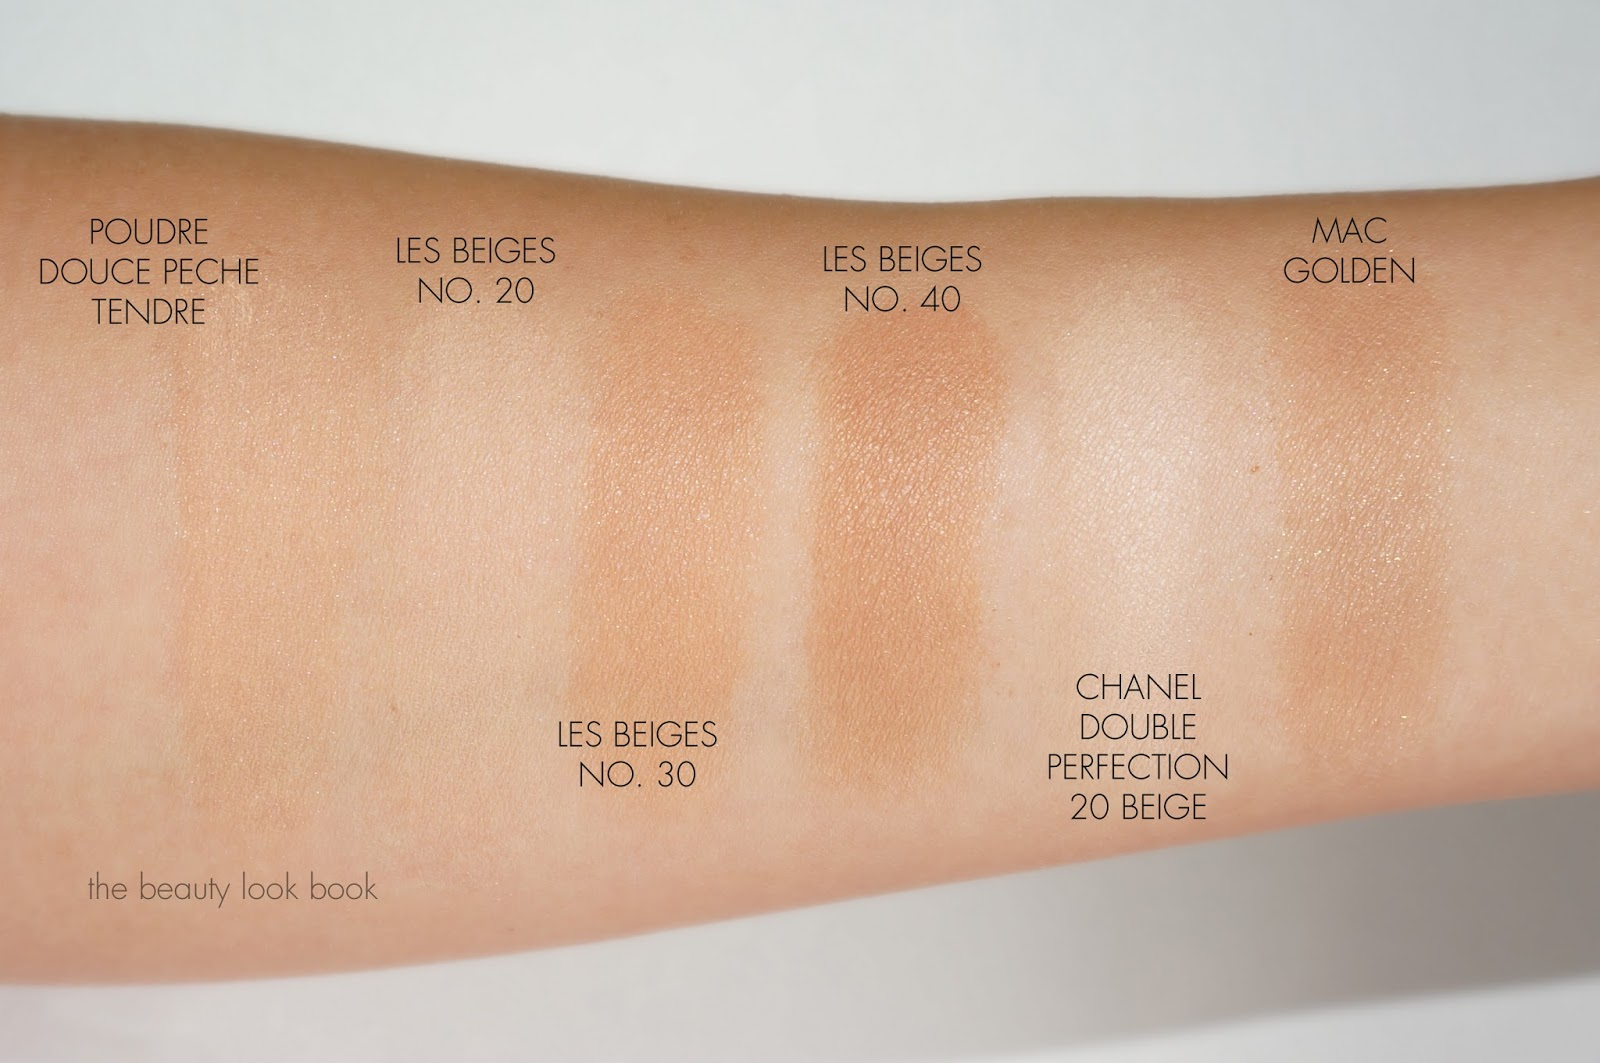 Chanel Les Beiges Comparisons The Beauty Look Book